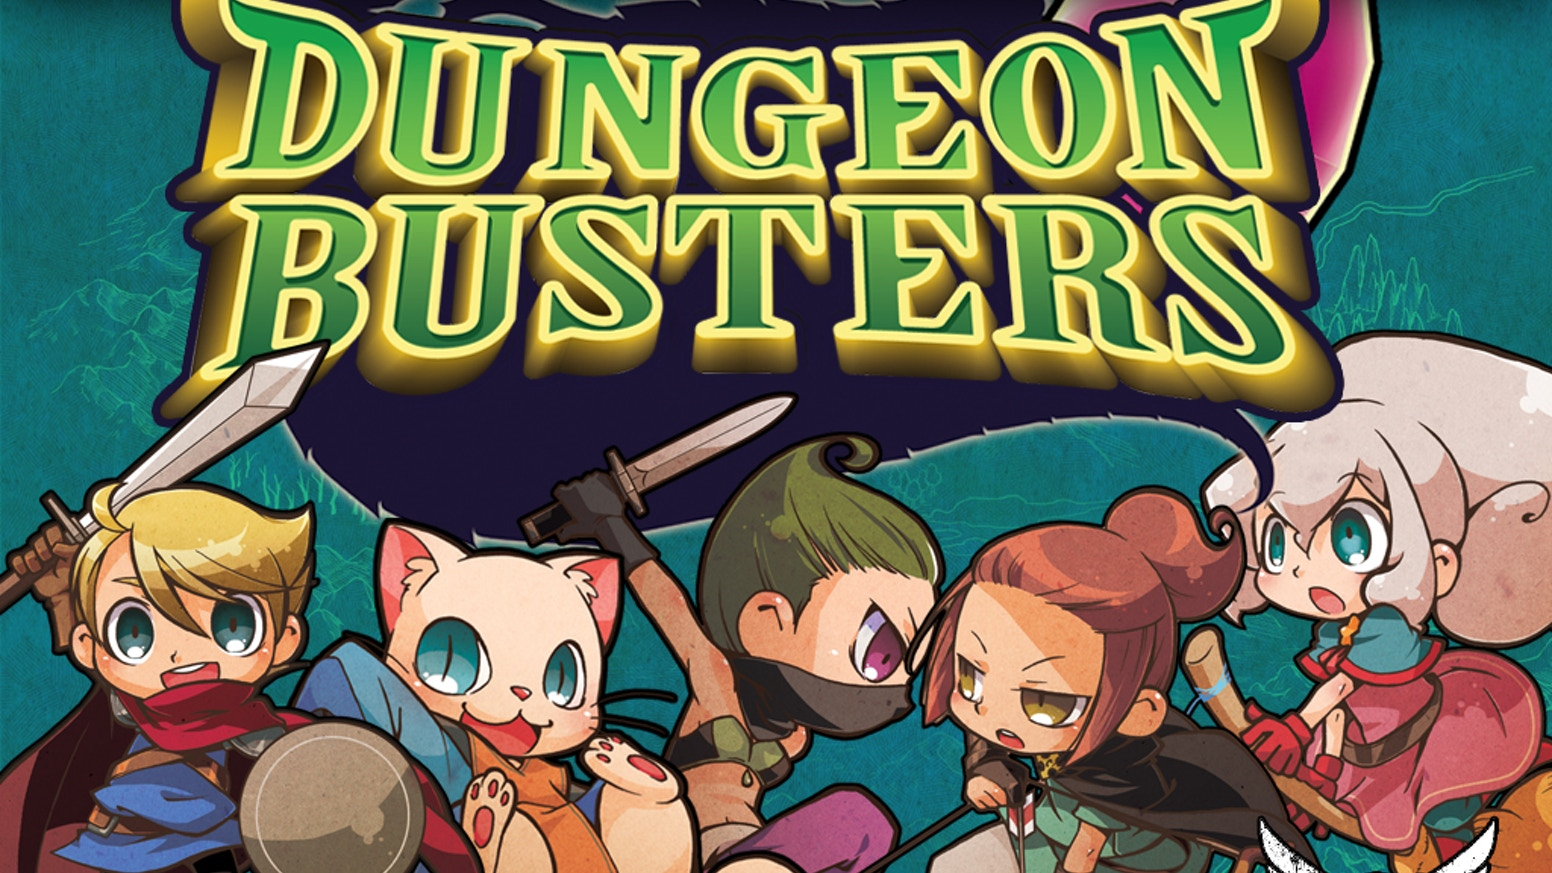 3-5 Player Bluffing Game that plays in 15-20 minutes.  Dungeon Busters is a quick, light, family filler game for ages 7+.